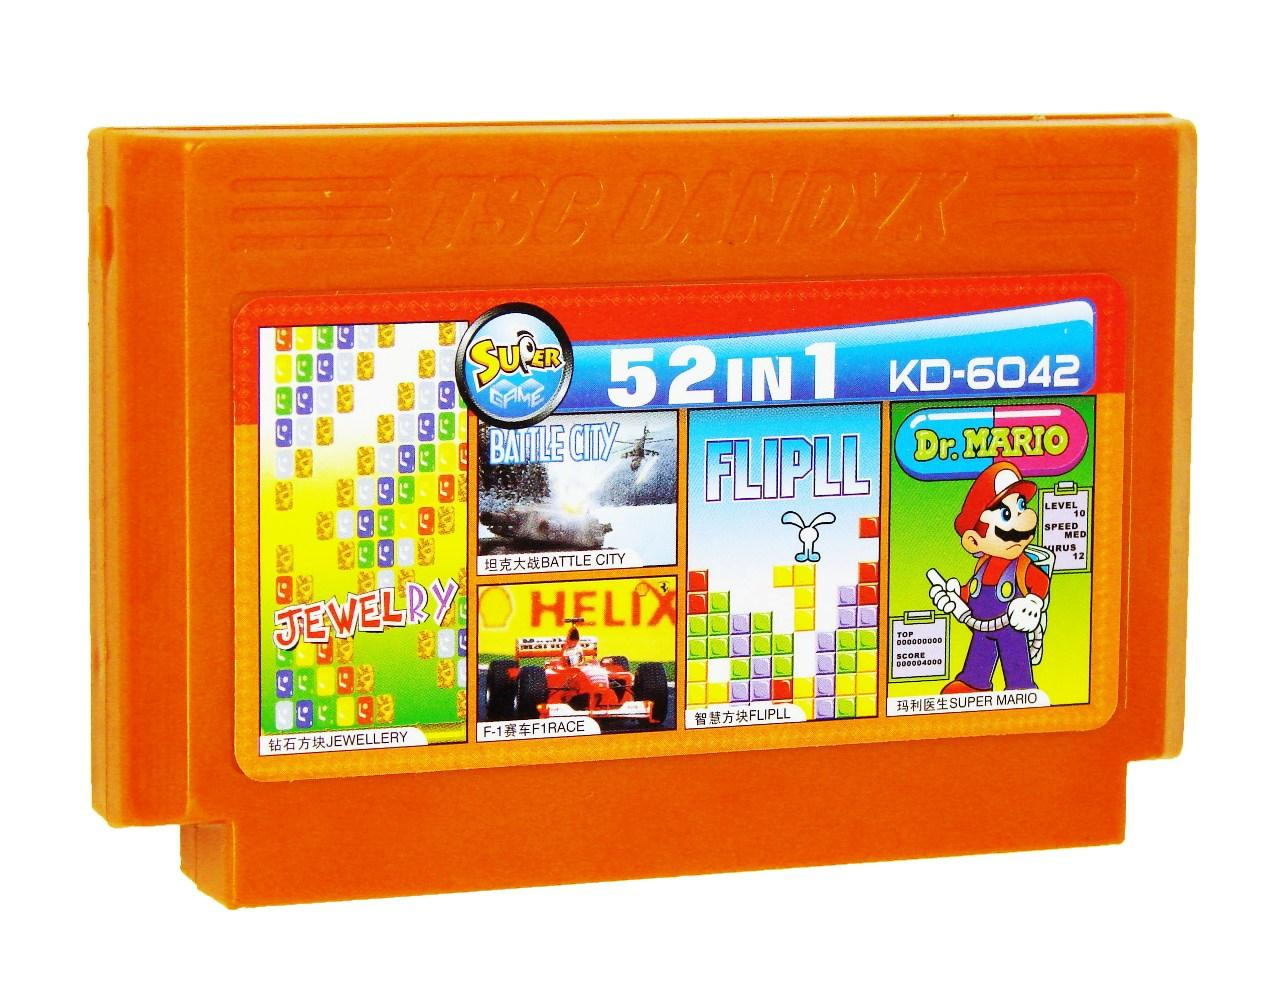 Картридж для Денди KD 6042 52 in 1 (Dendy), Jewellry, Battle City, F1 Race, Flipll, Super Mario